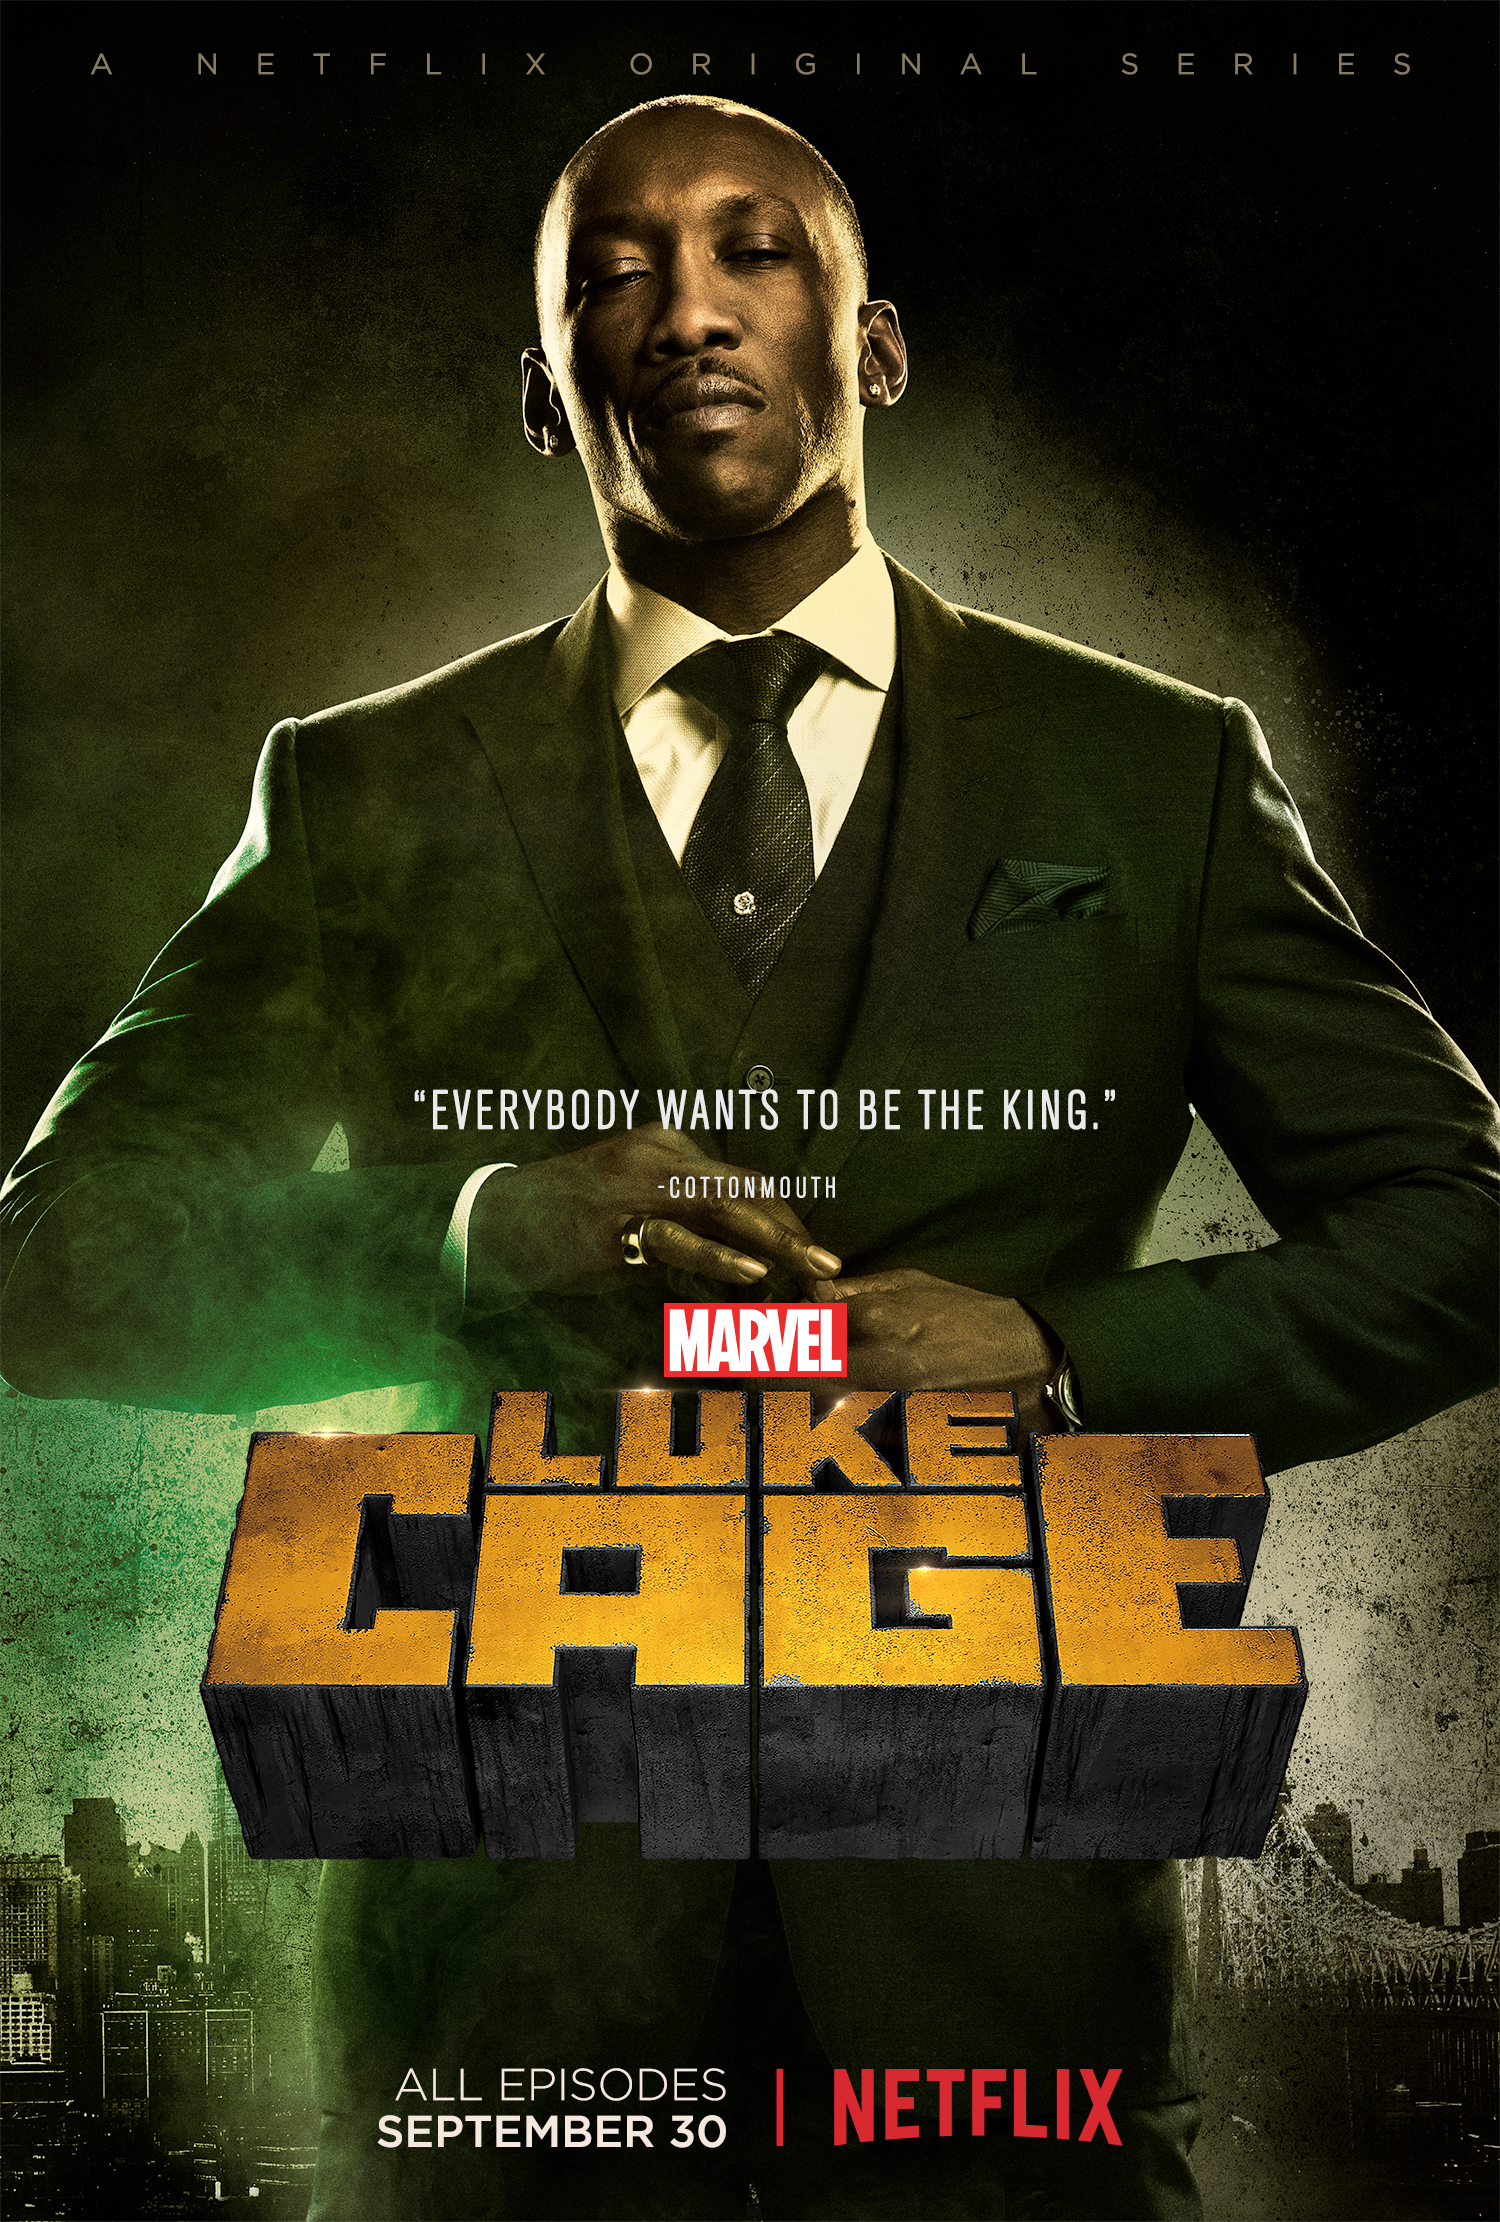 luke cage character posters for cottonmouth shades and